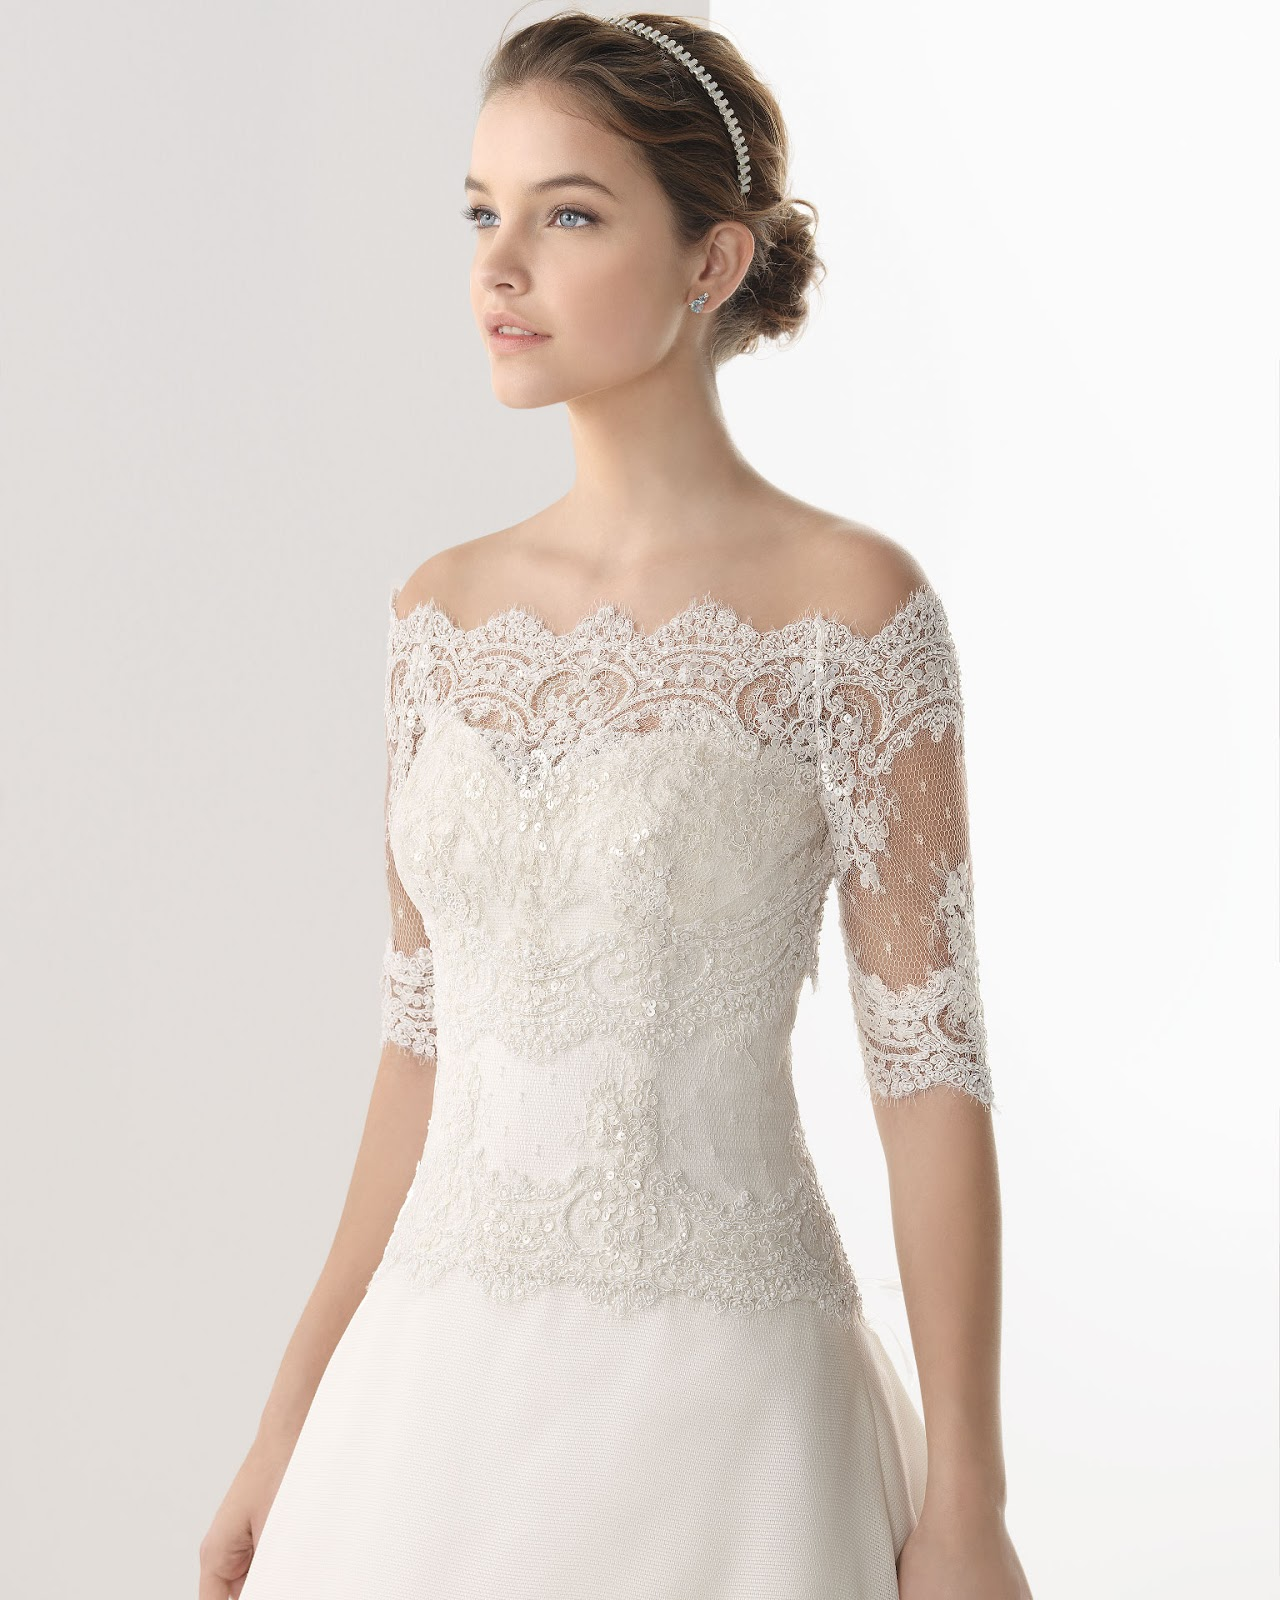 wedding dresses with lace sleeves off the shoulder sleeved wedding dress Wedding Dresses With Lace Sleeves Off The Shoulder 65